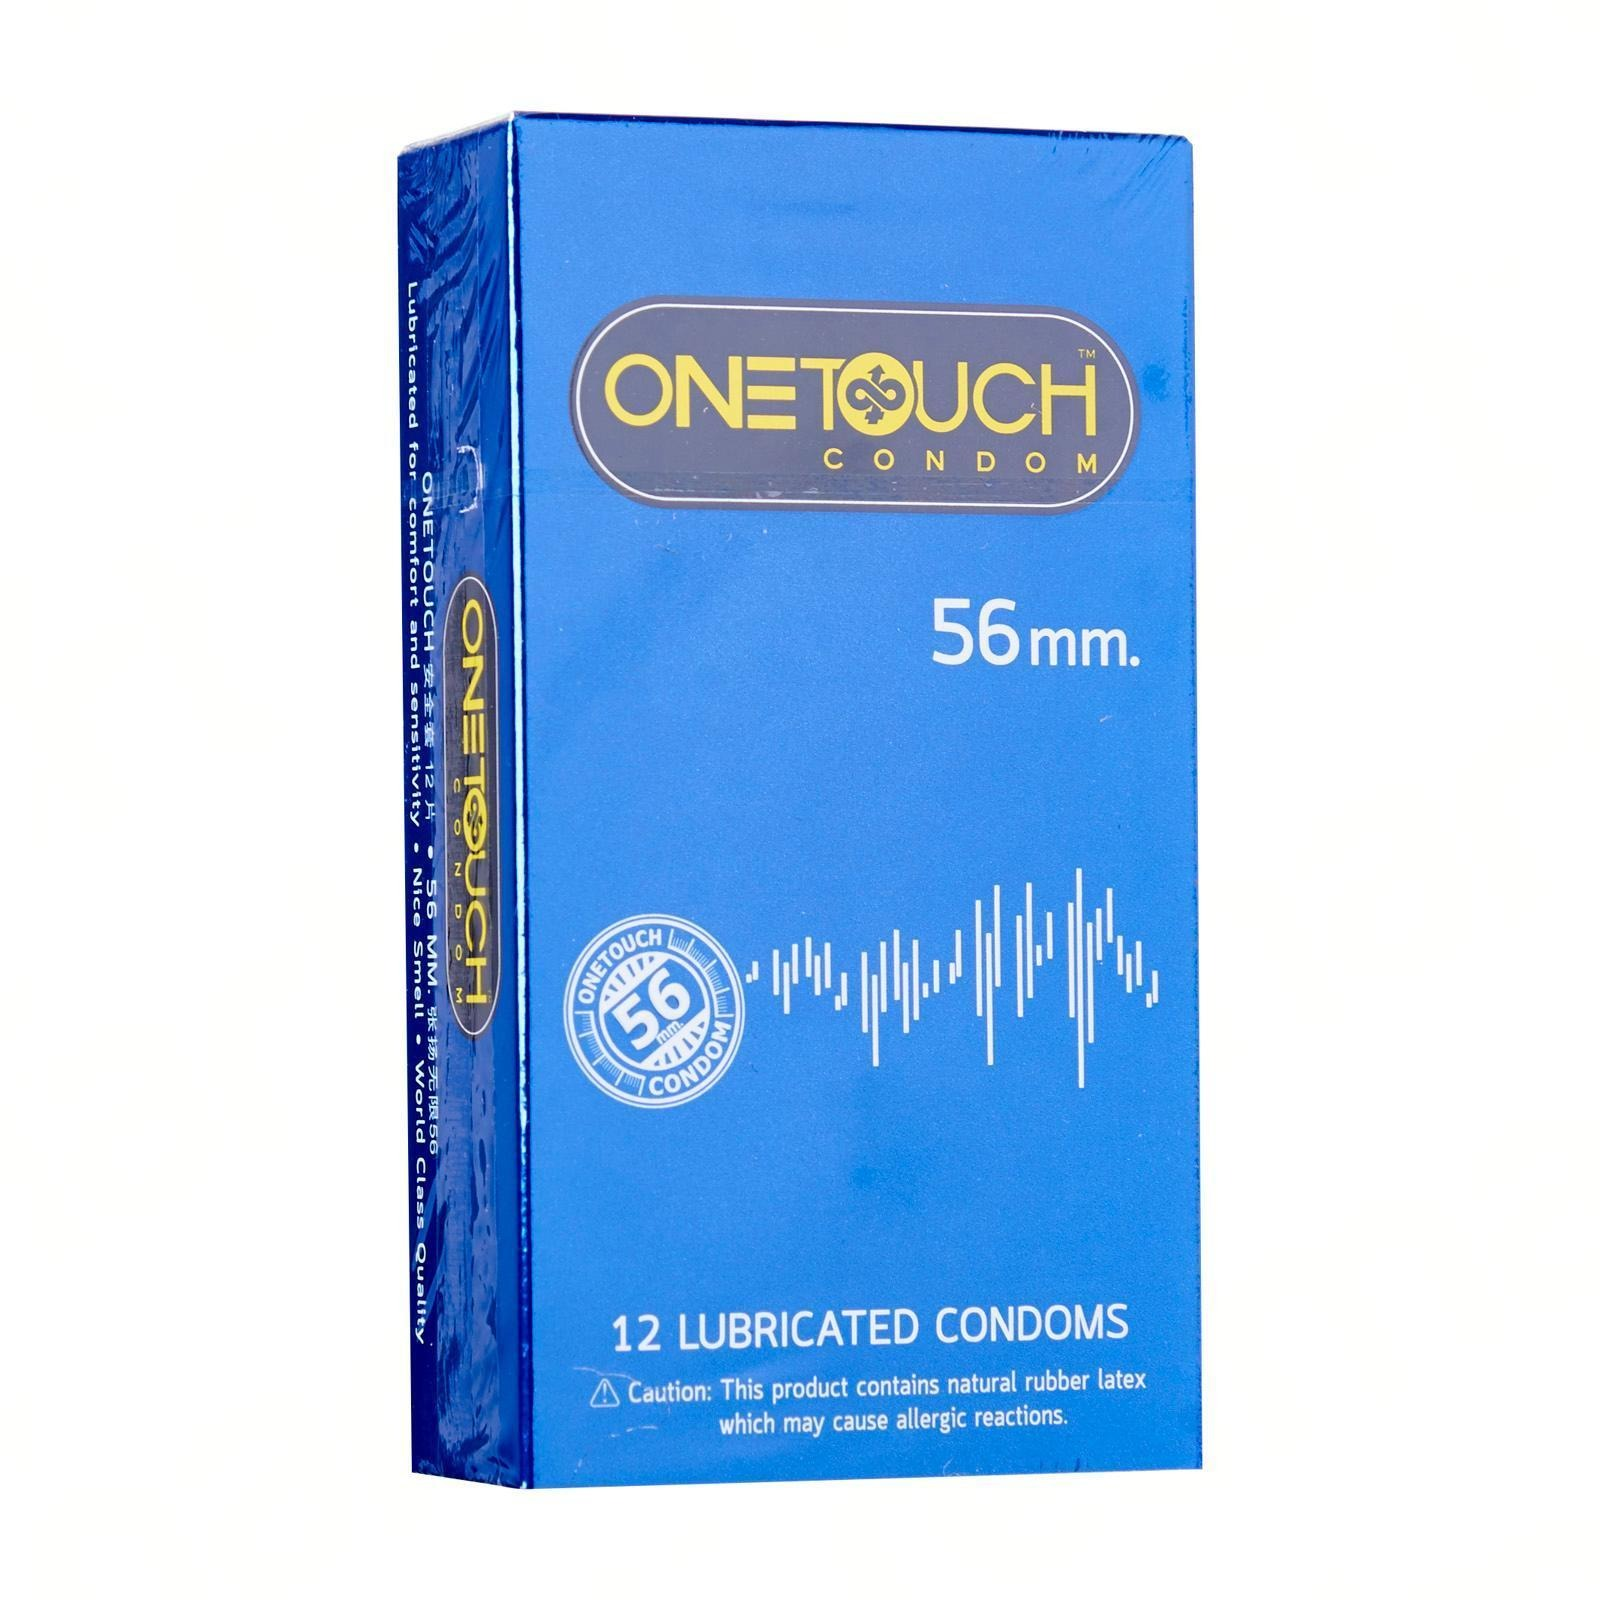 ONE TOUCH Condom - 56mm